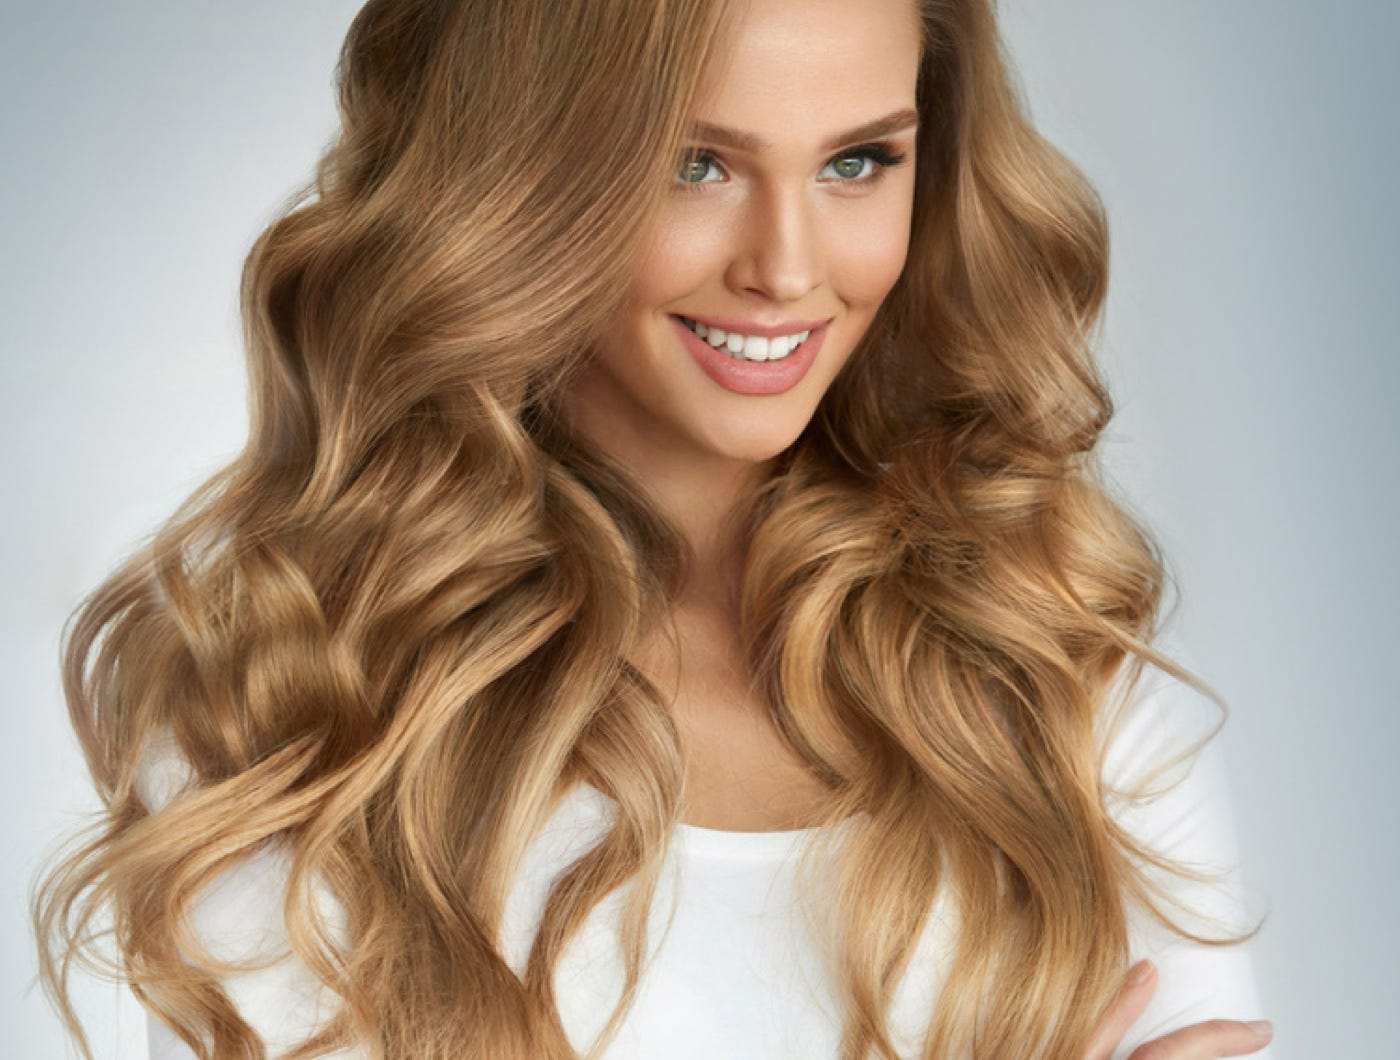 Woman smiling with great hair.